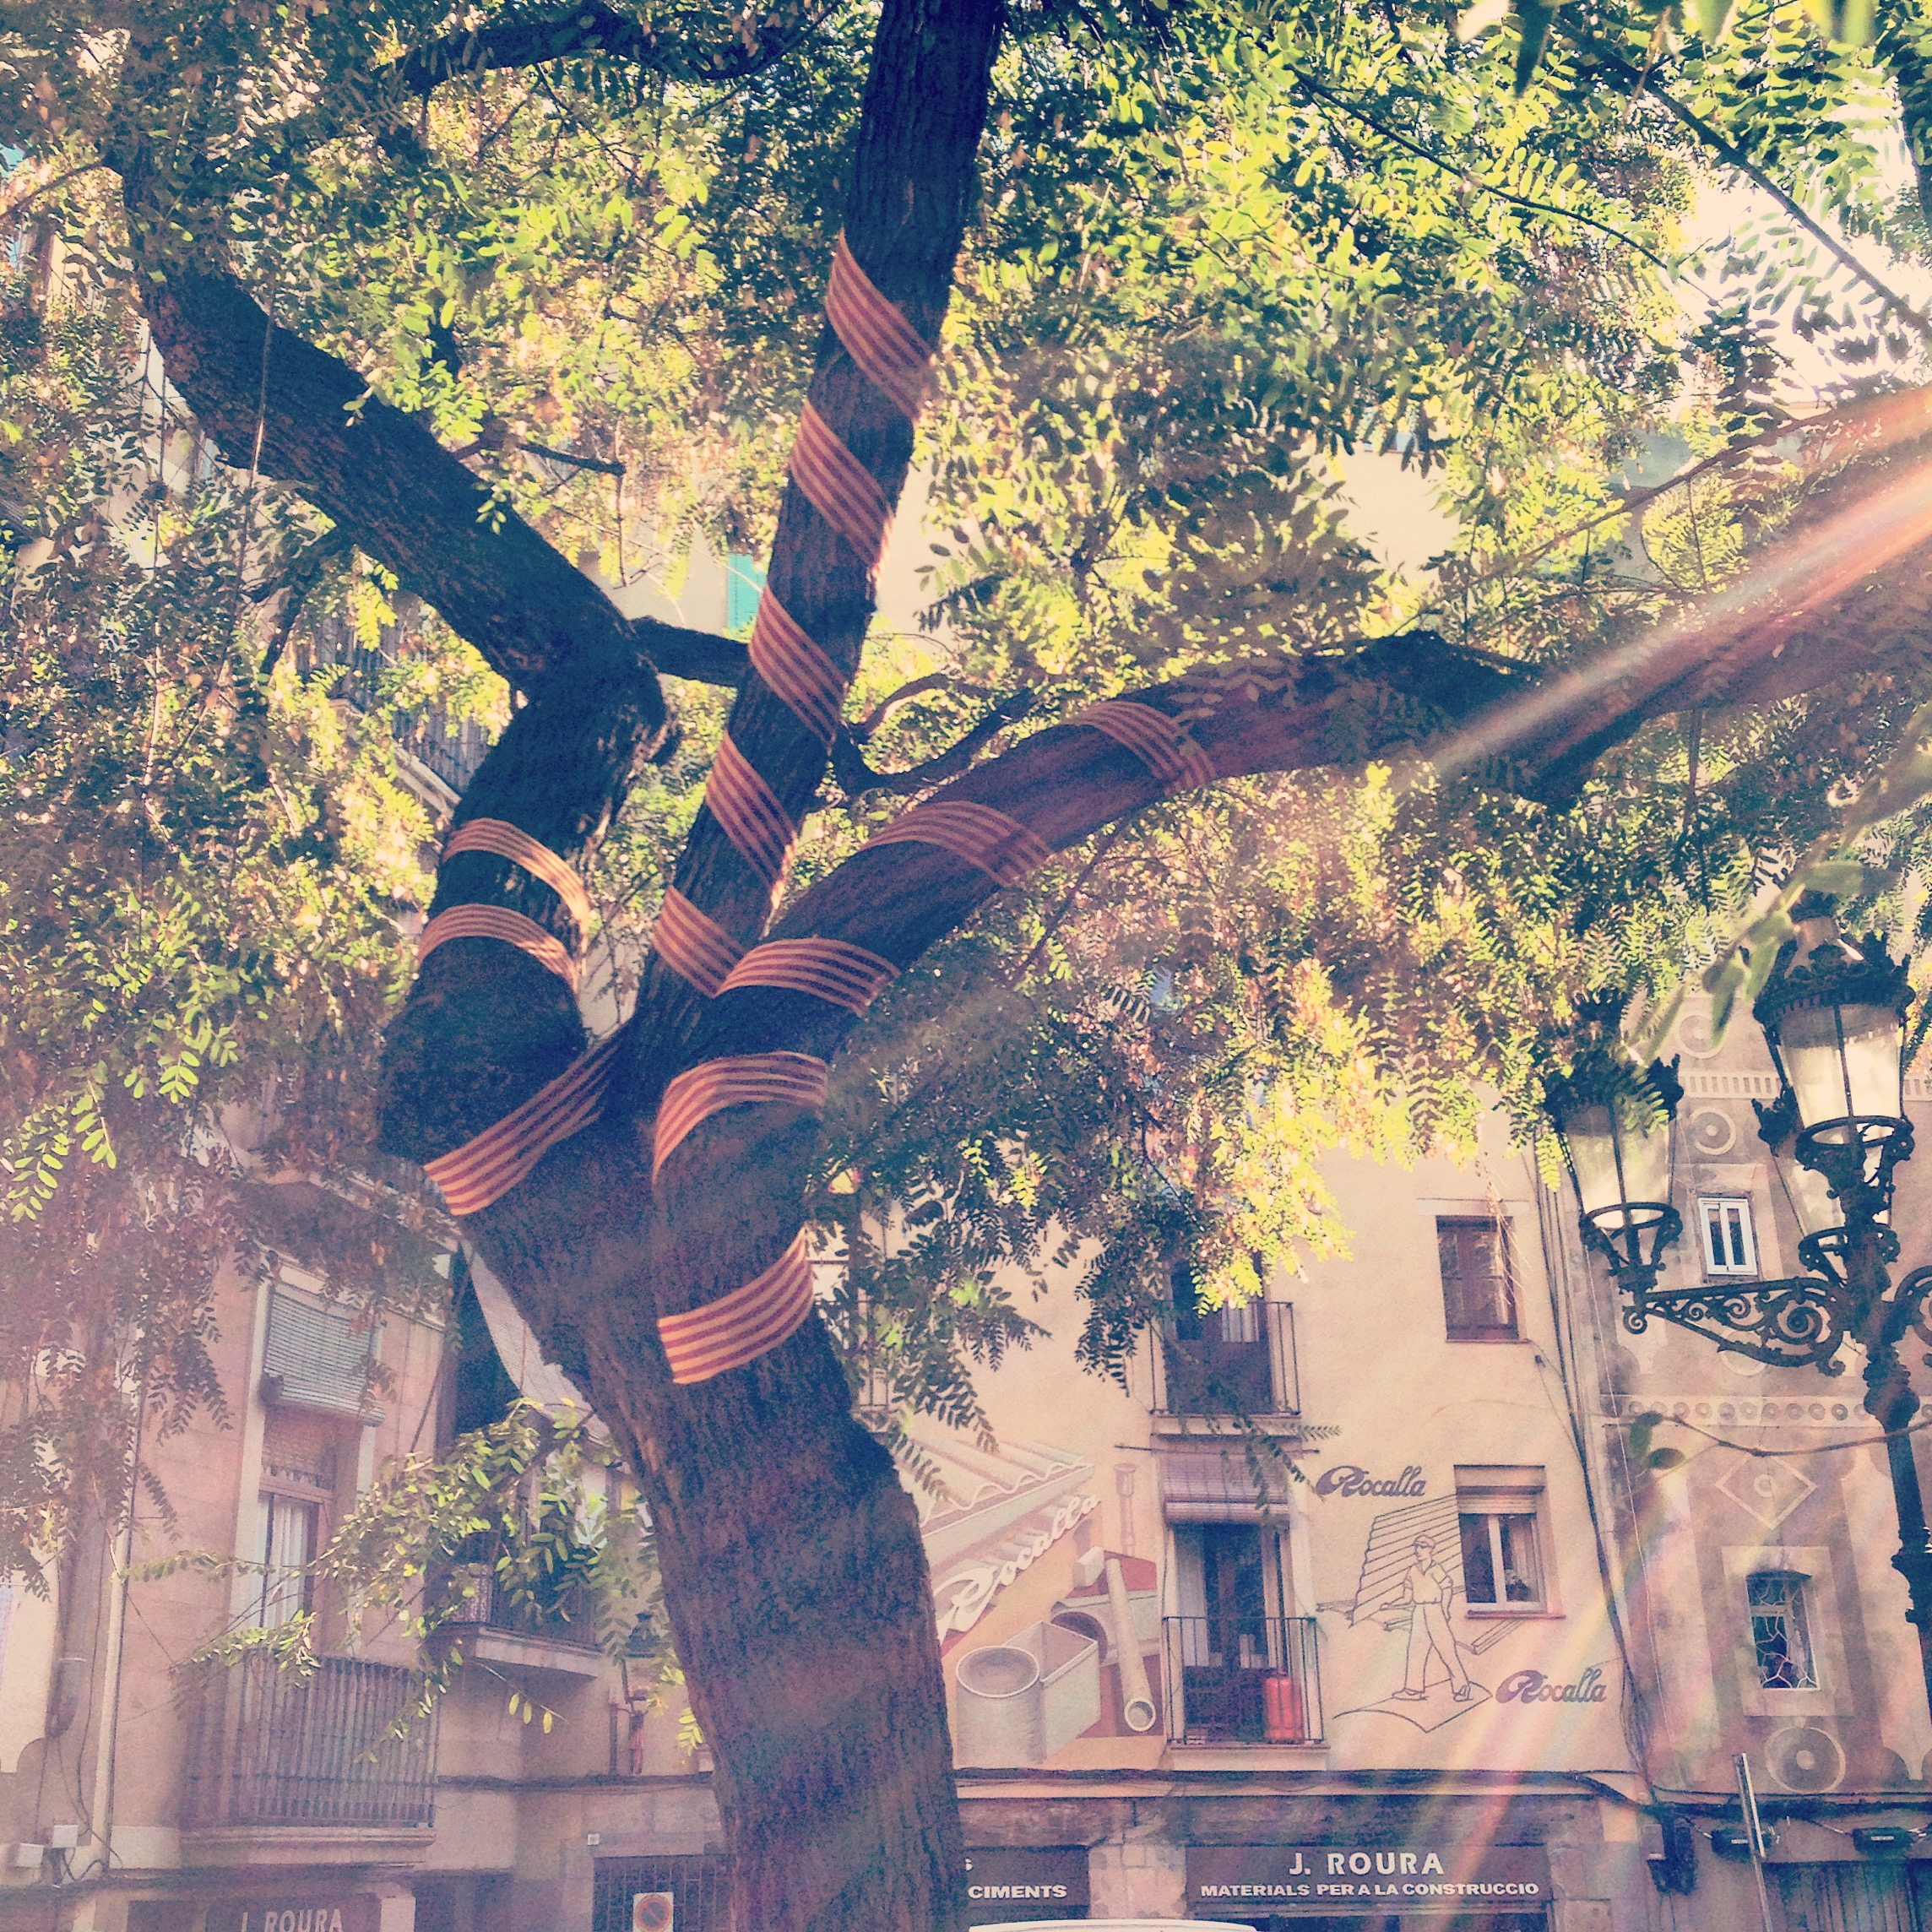 Catalan flag wrapped around a tree in the Born barrio, Barcelona